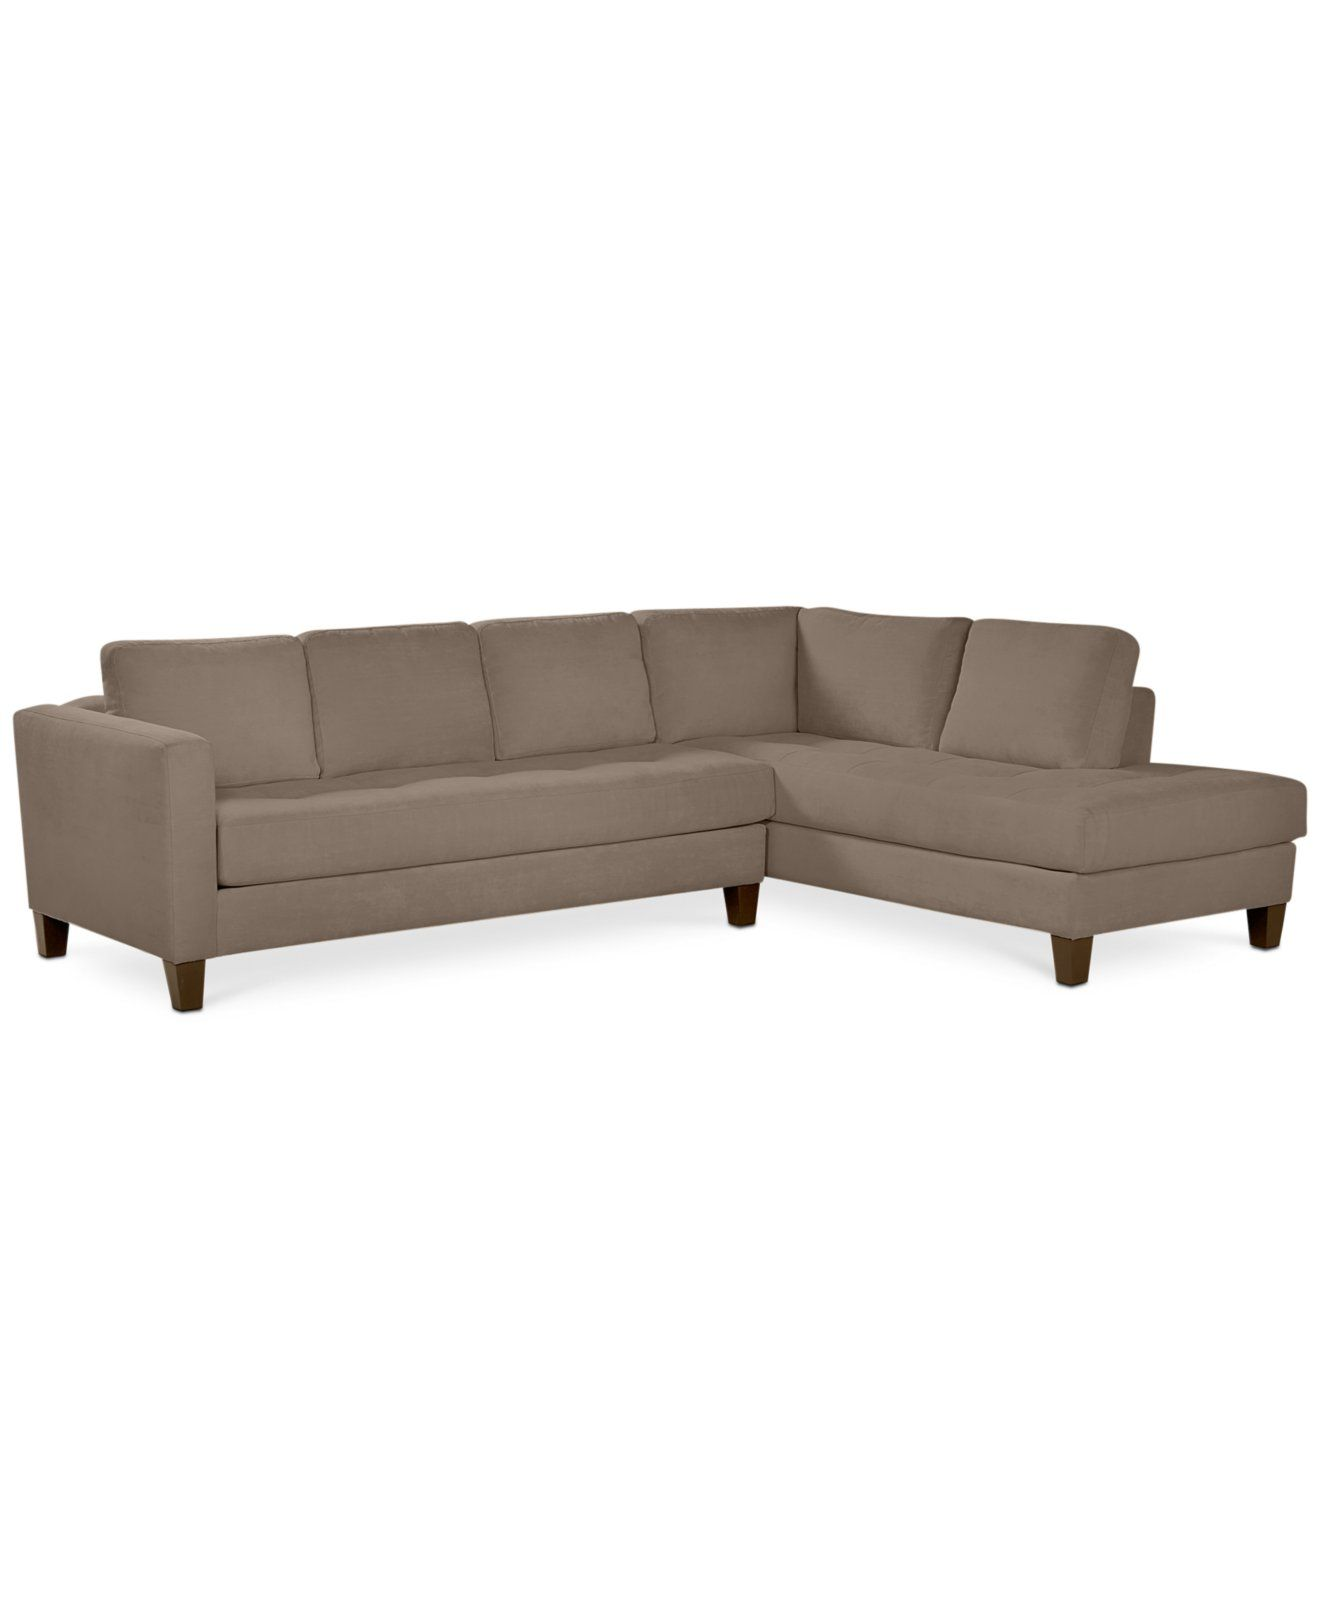 Rylee Fabric 2 Piece Sectional Sofa Created for Macy s